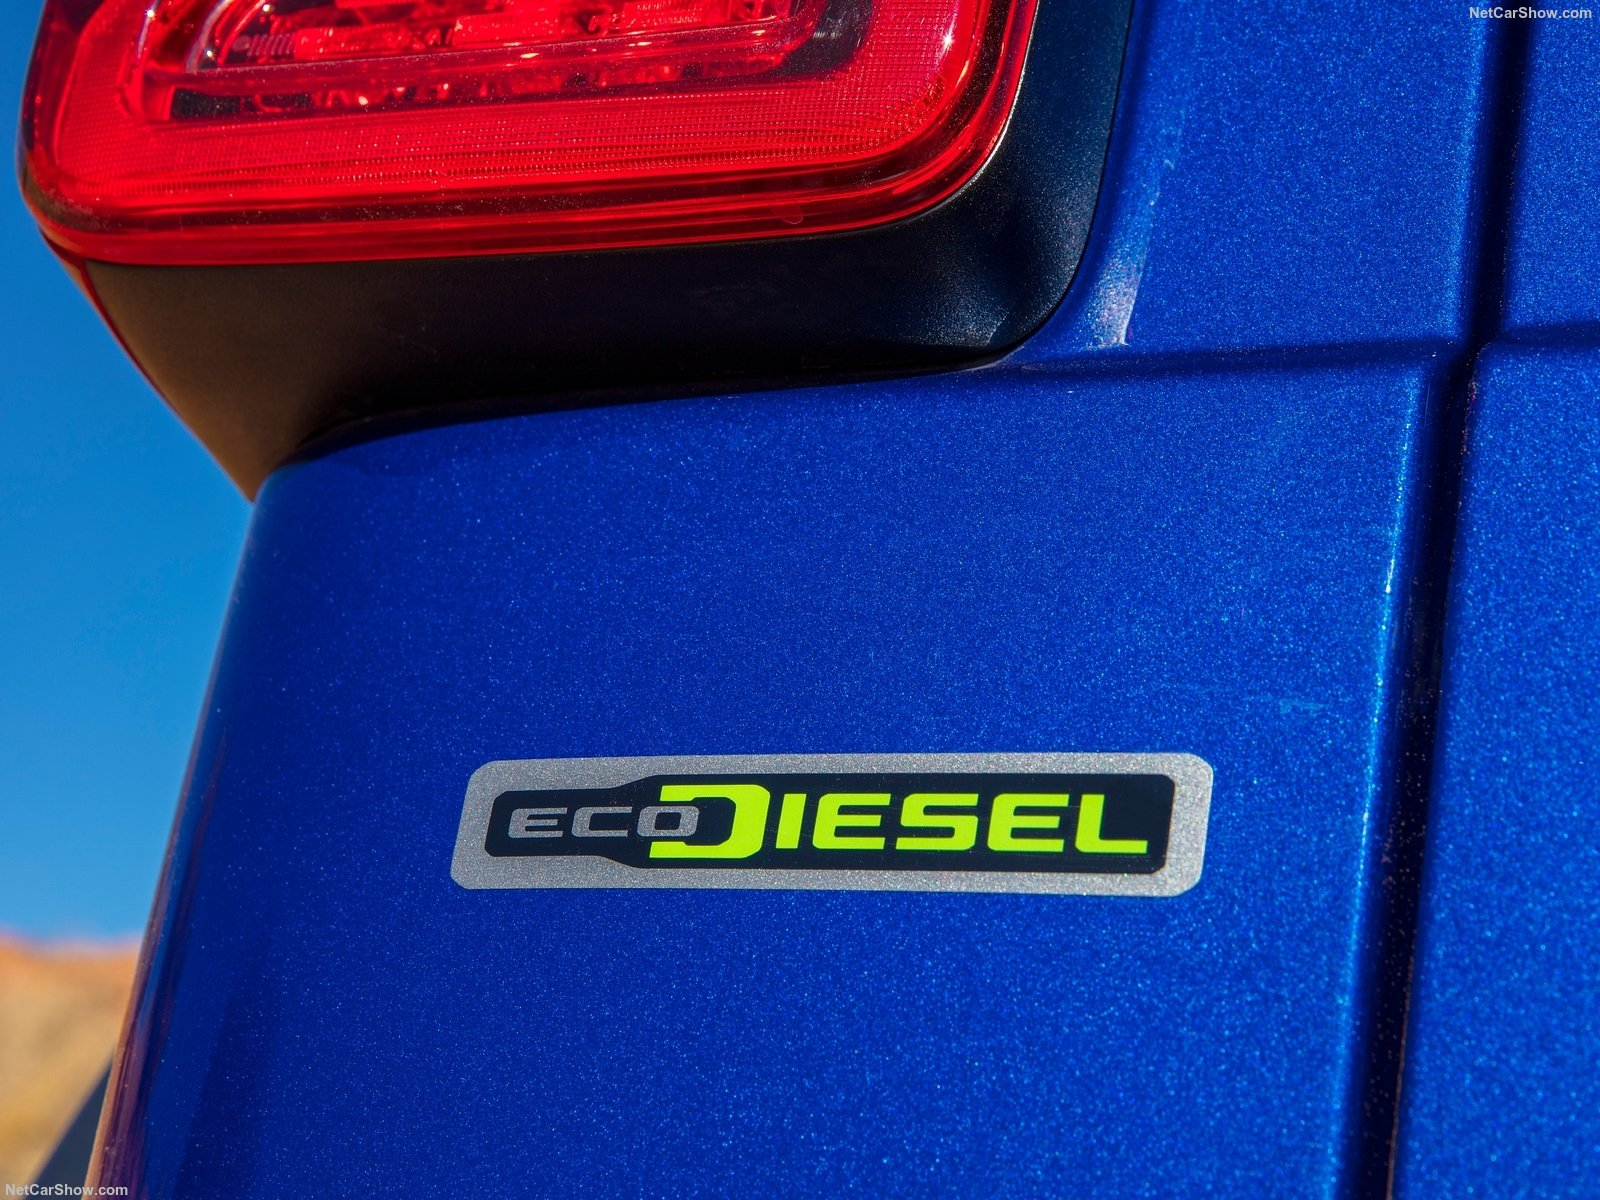 2020 blue rubicon eco-diesel logo badge